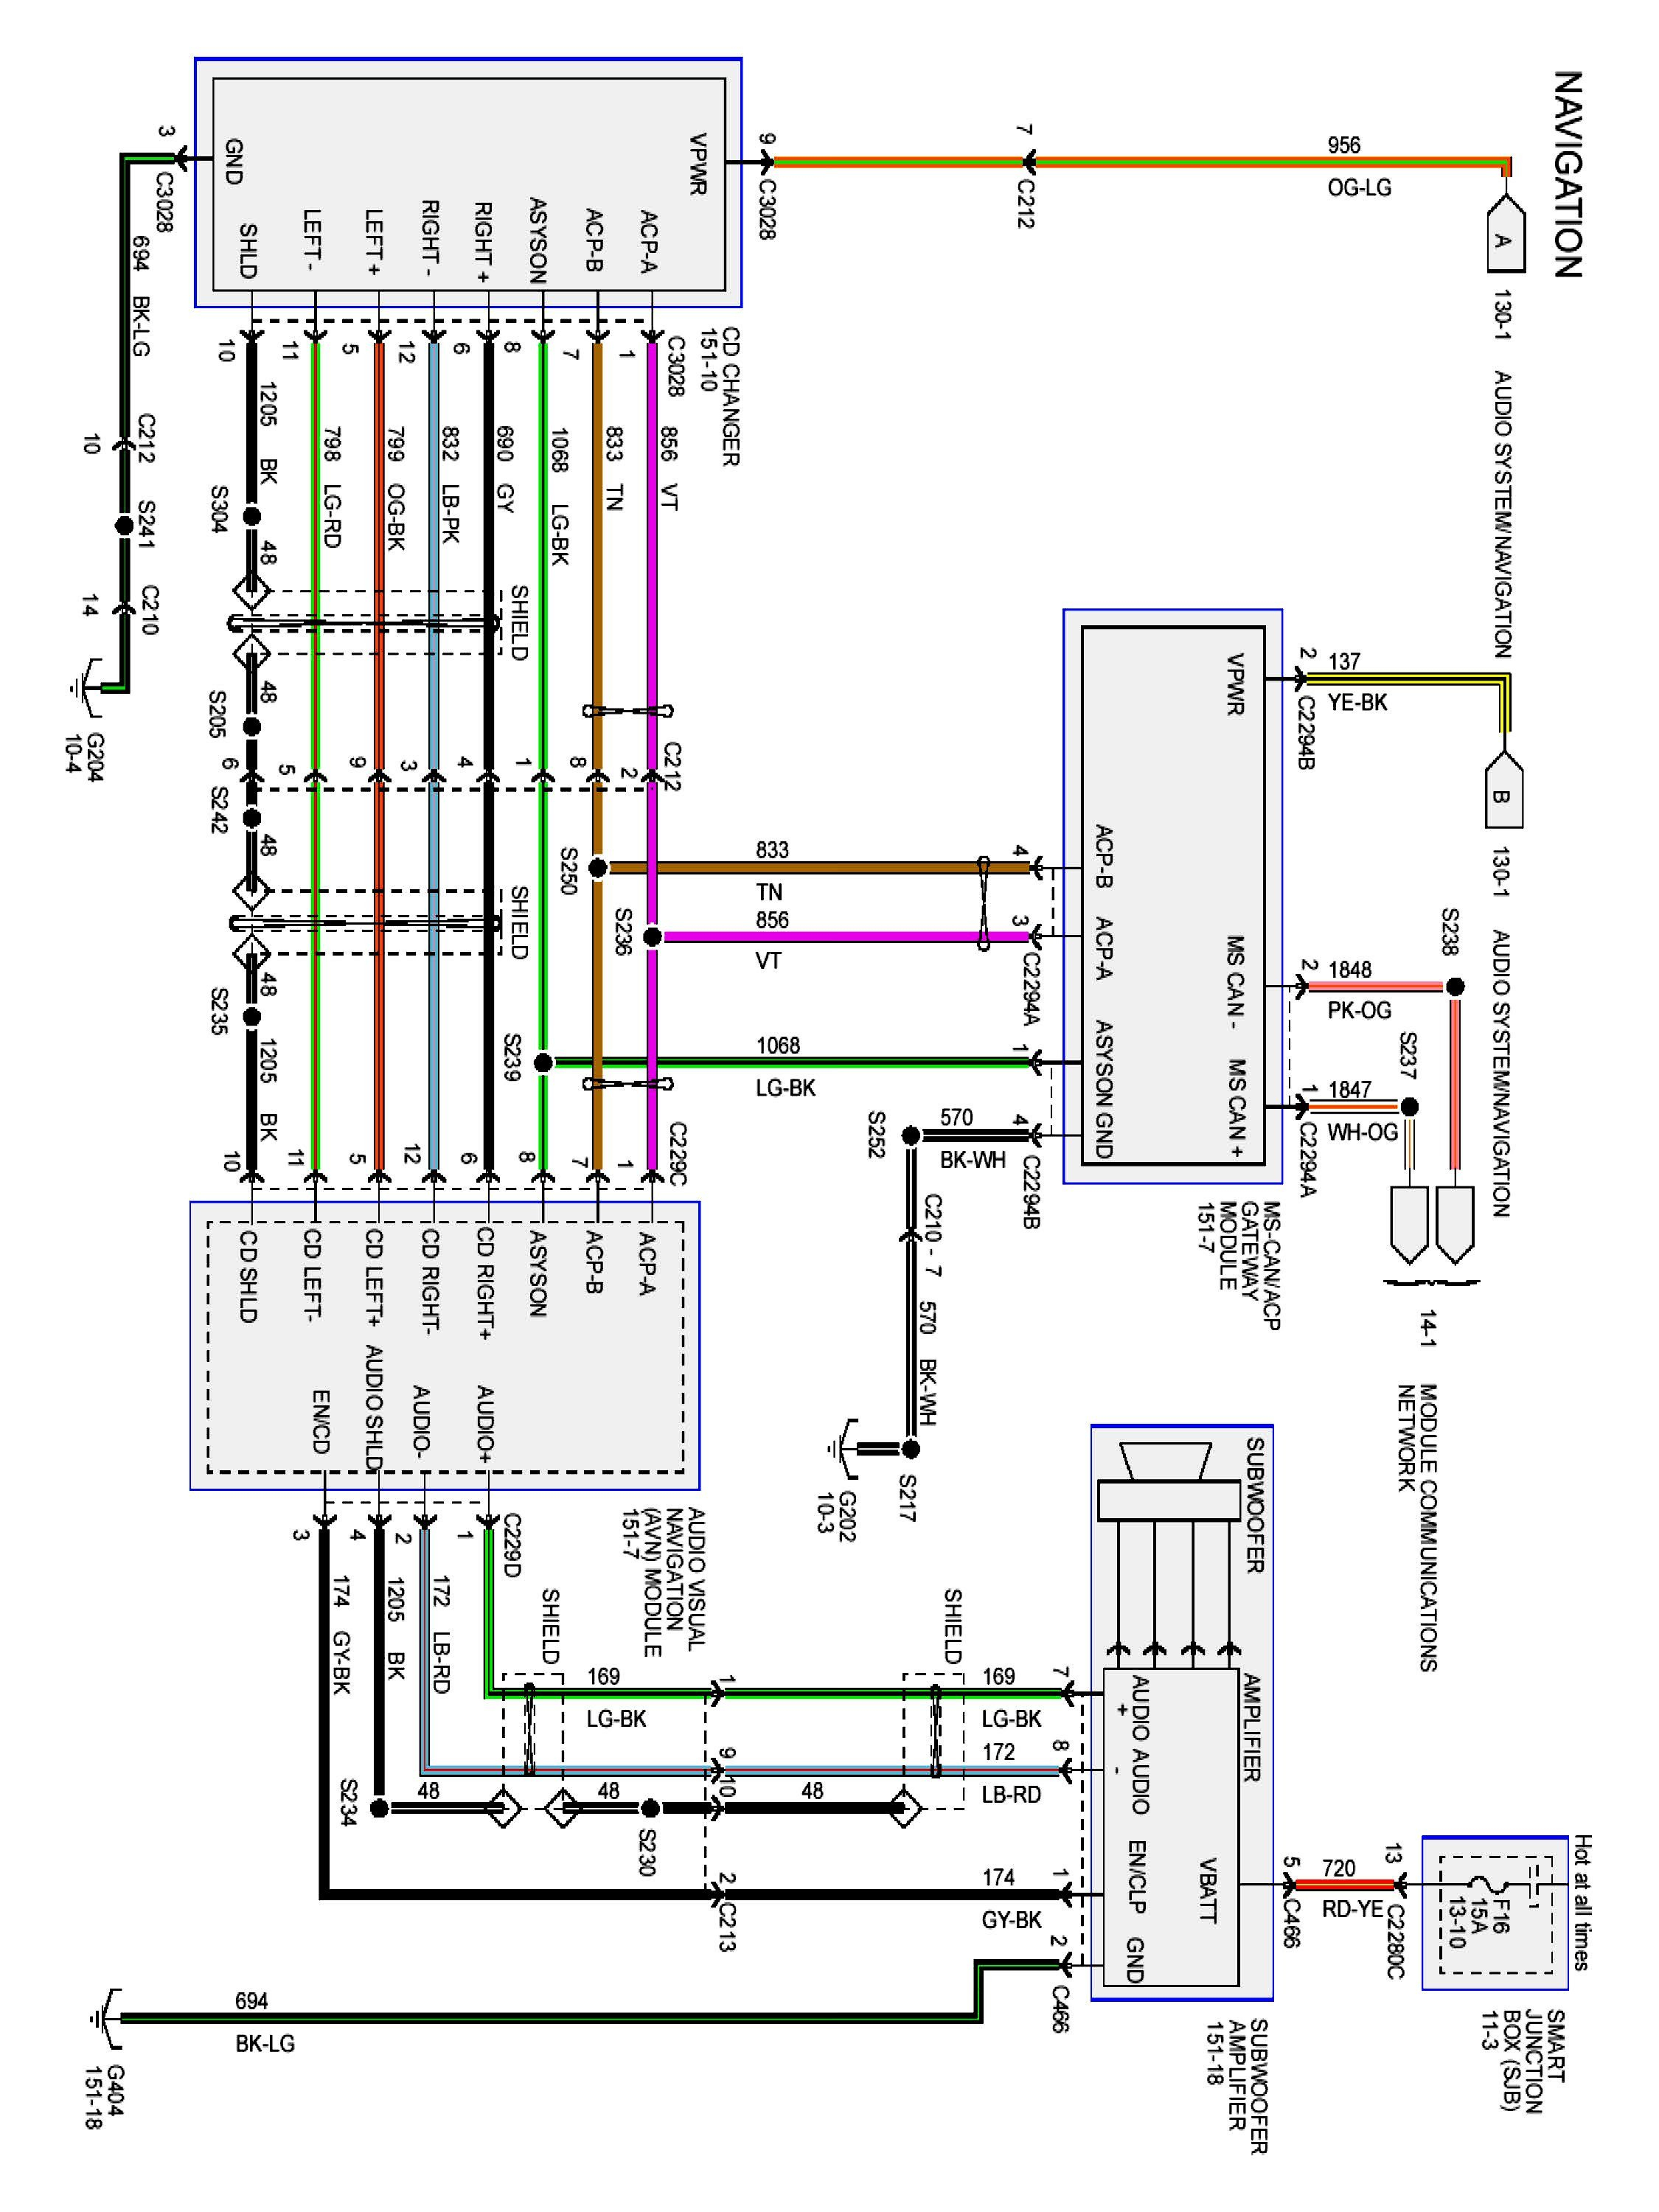 2008 F150 Charging Wiring Diagram - Wiring Diagram Blog - 2002 Ford Explorer Wiring Diagram